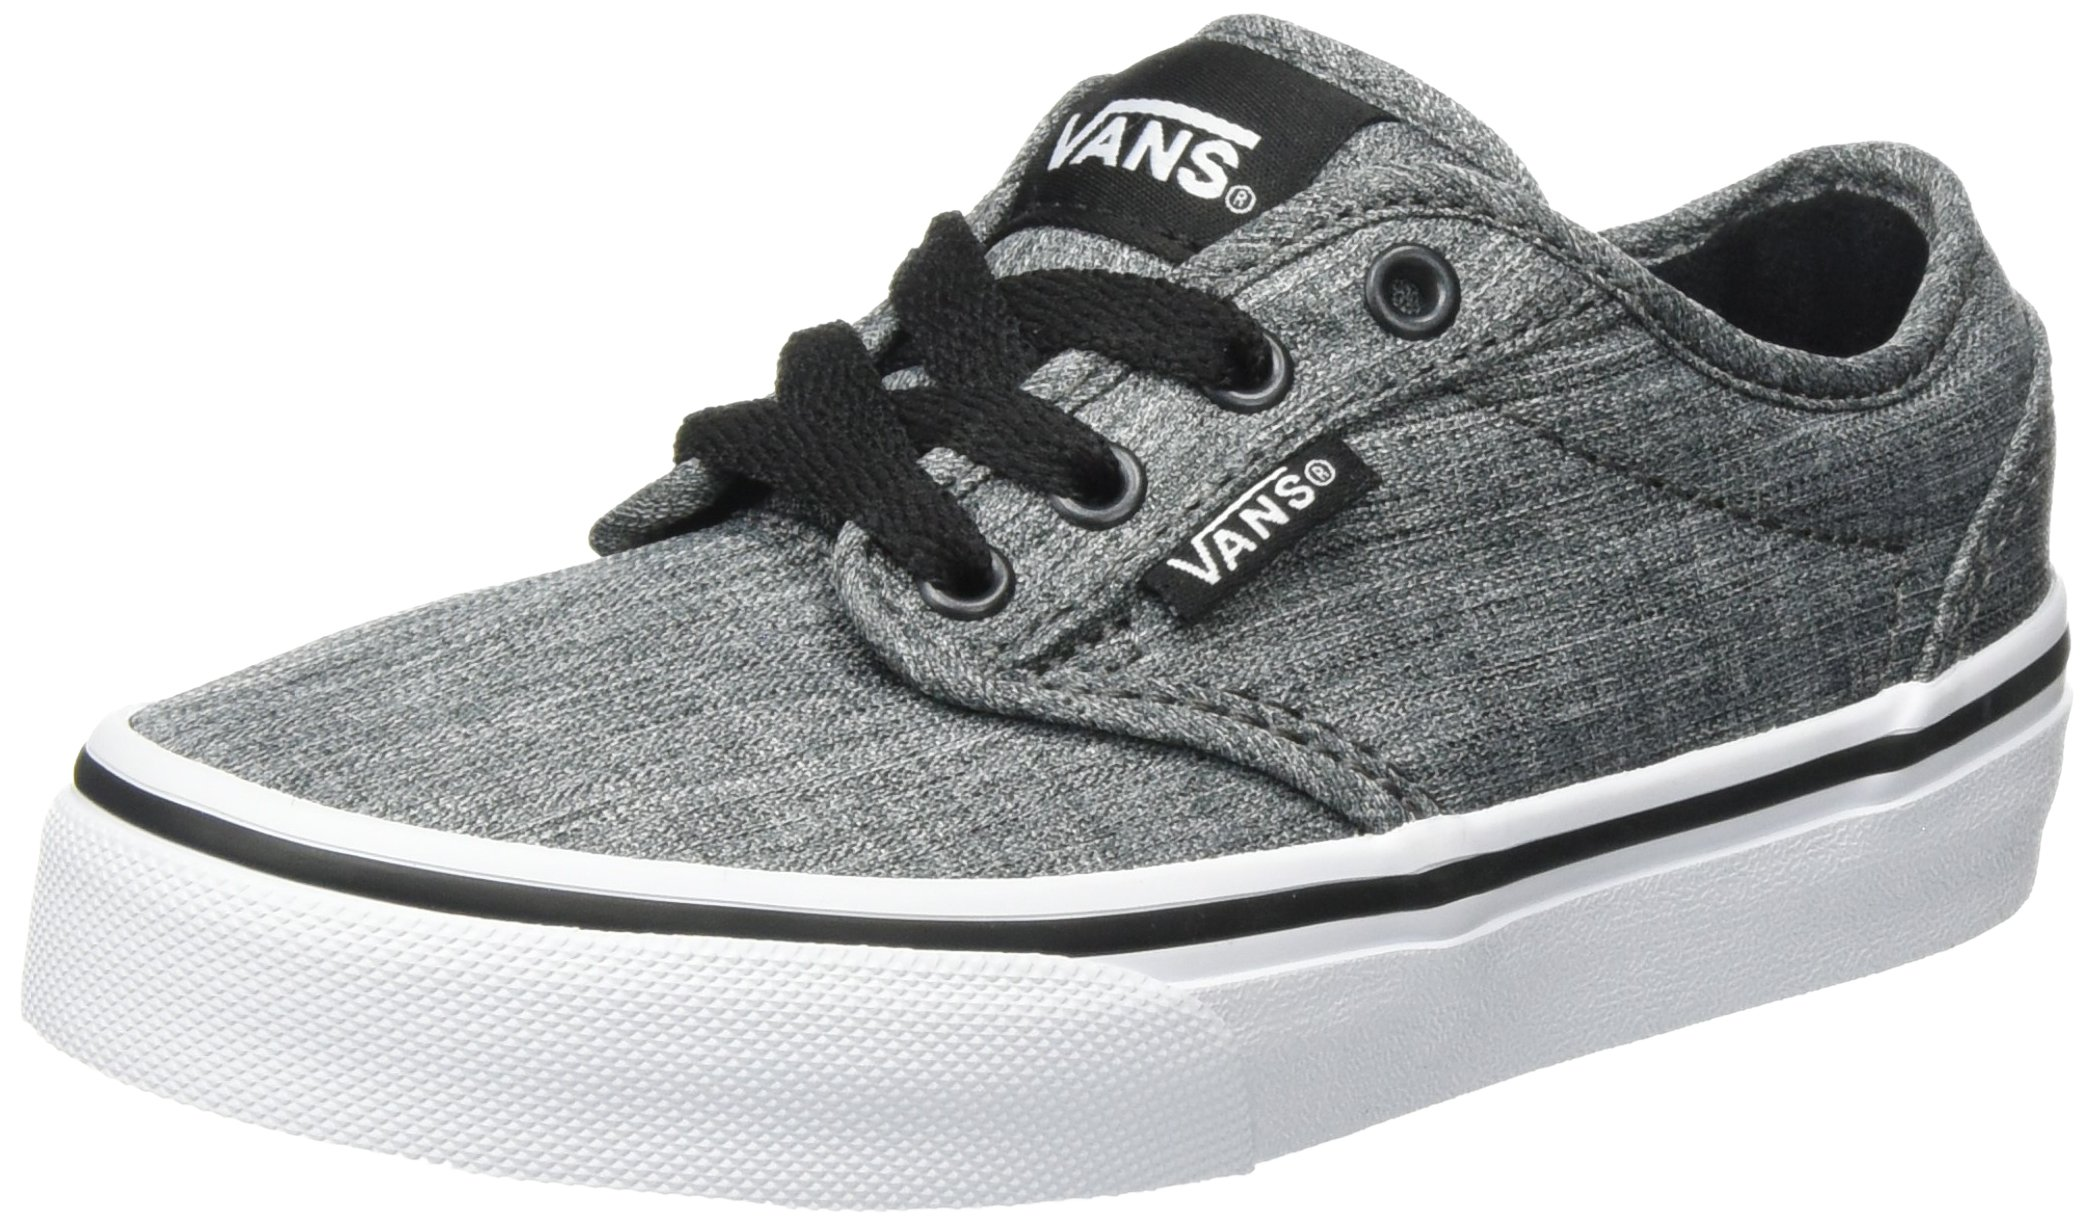 7f71d67fd0 Galleon - VANS KIDS ATWOOD SHOES ROCK TEXTILE BLACK WHITE SIZE 4.5